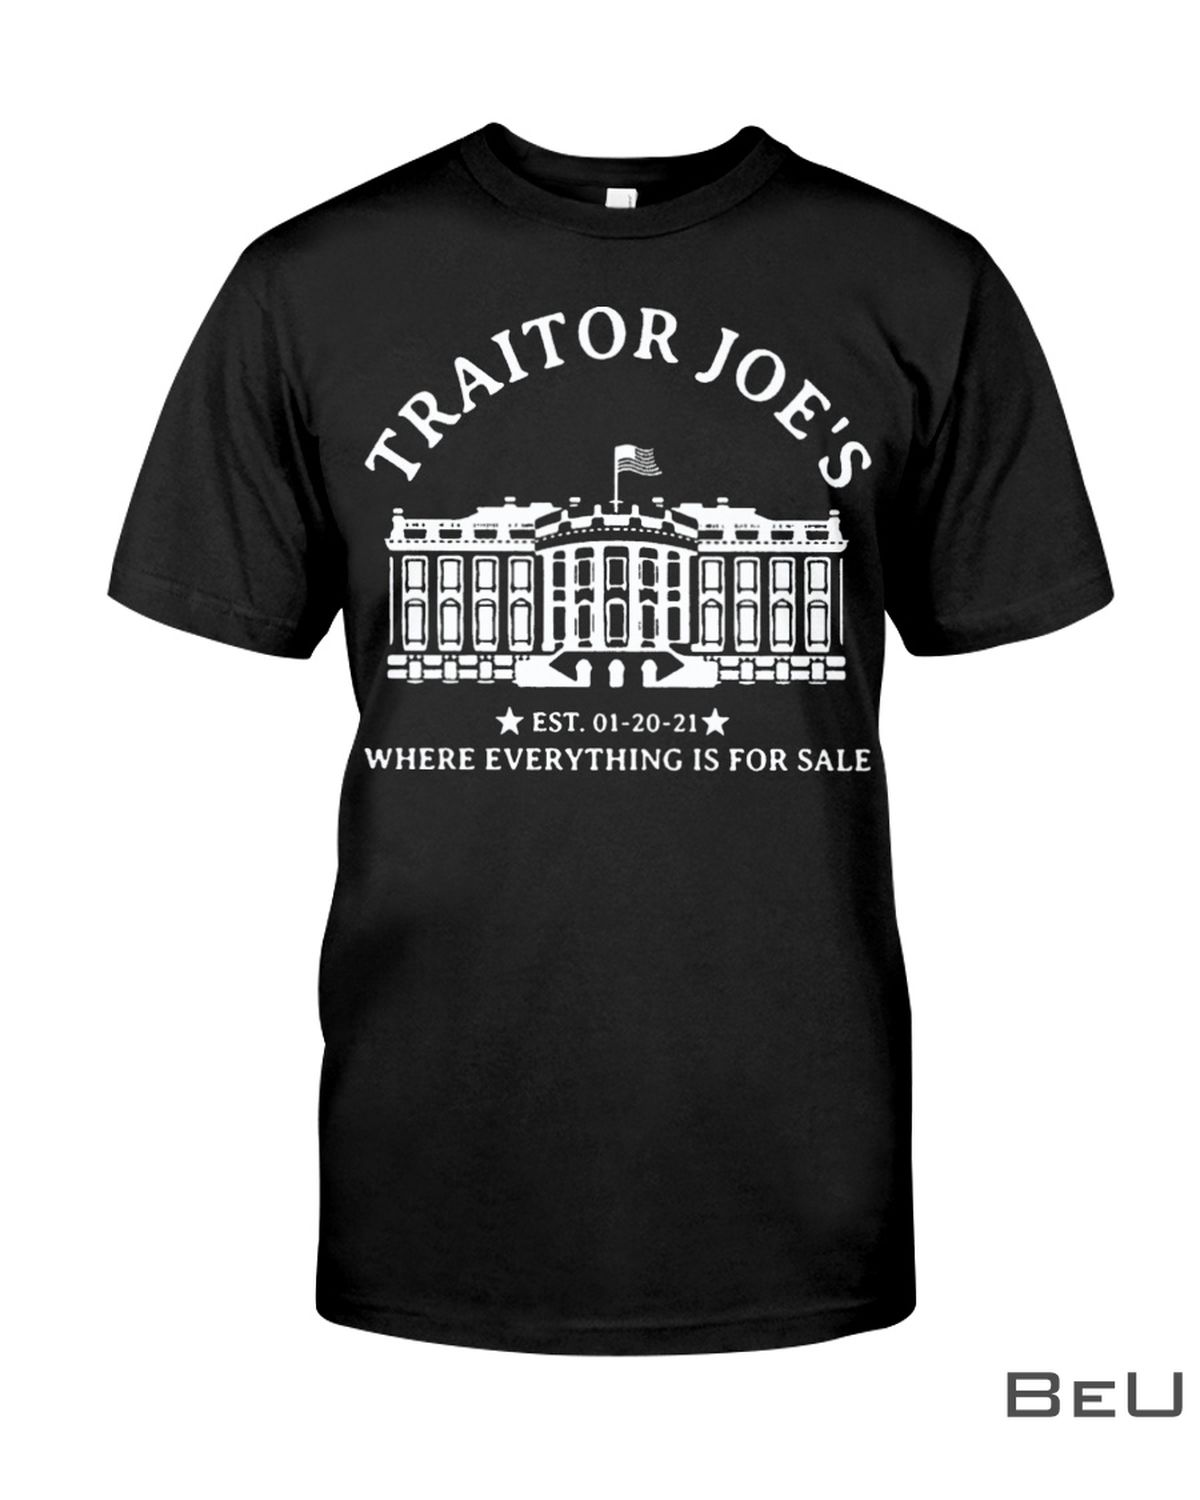 Traitor Joe's Est 01-20-21 Where Everything Is For Sale Shirt, hoodie